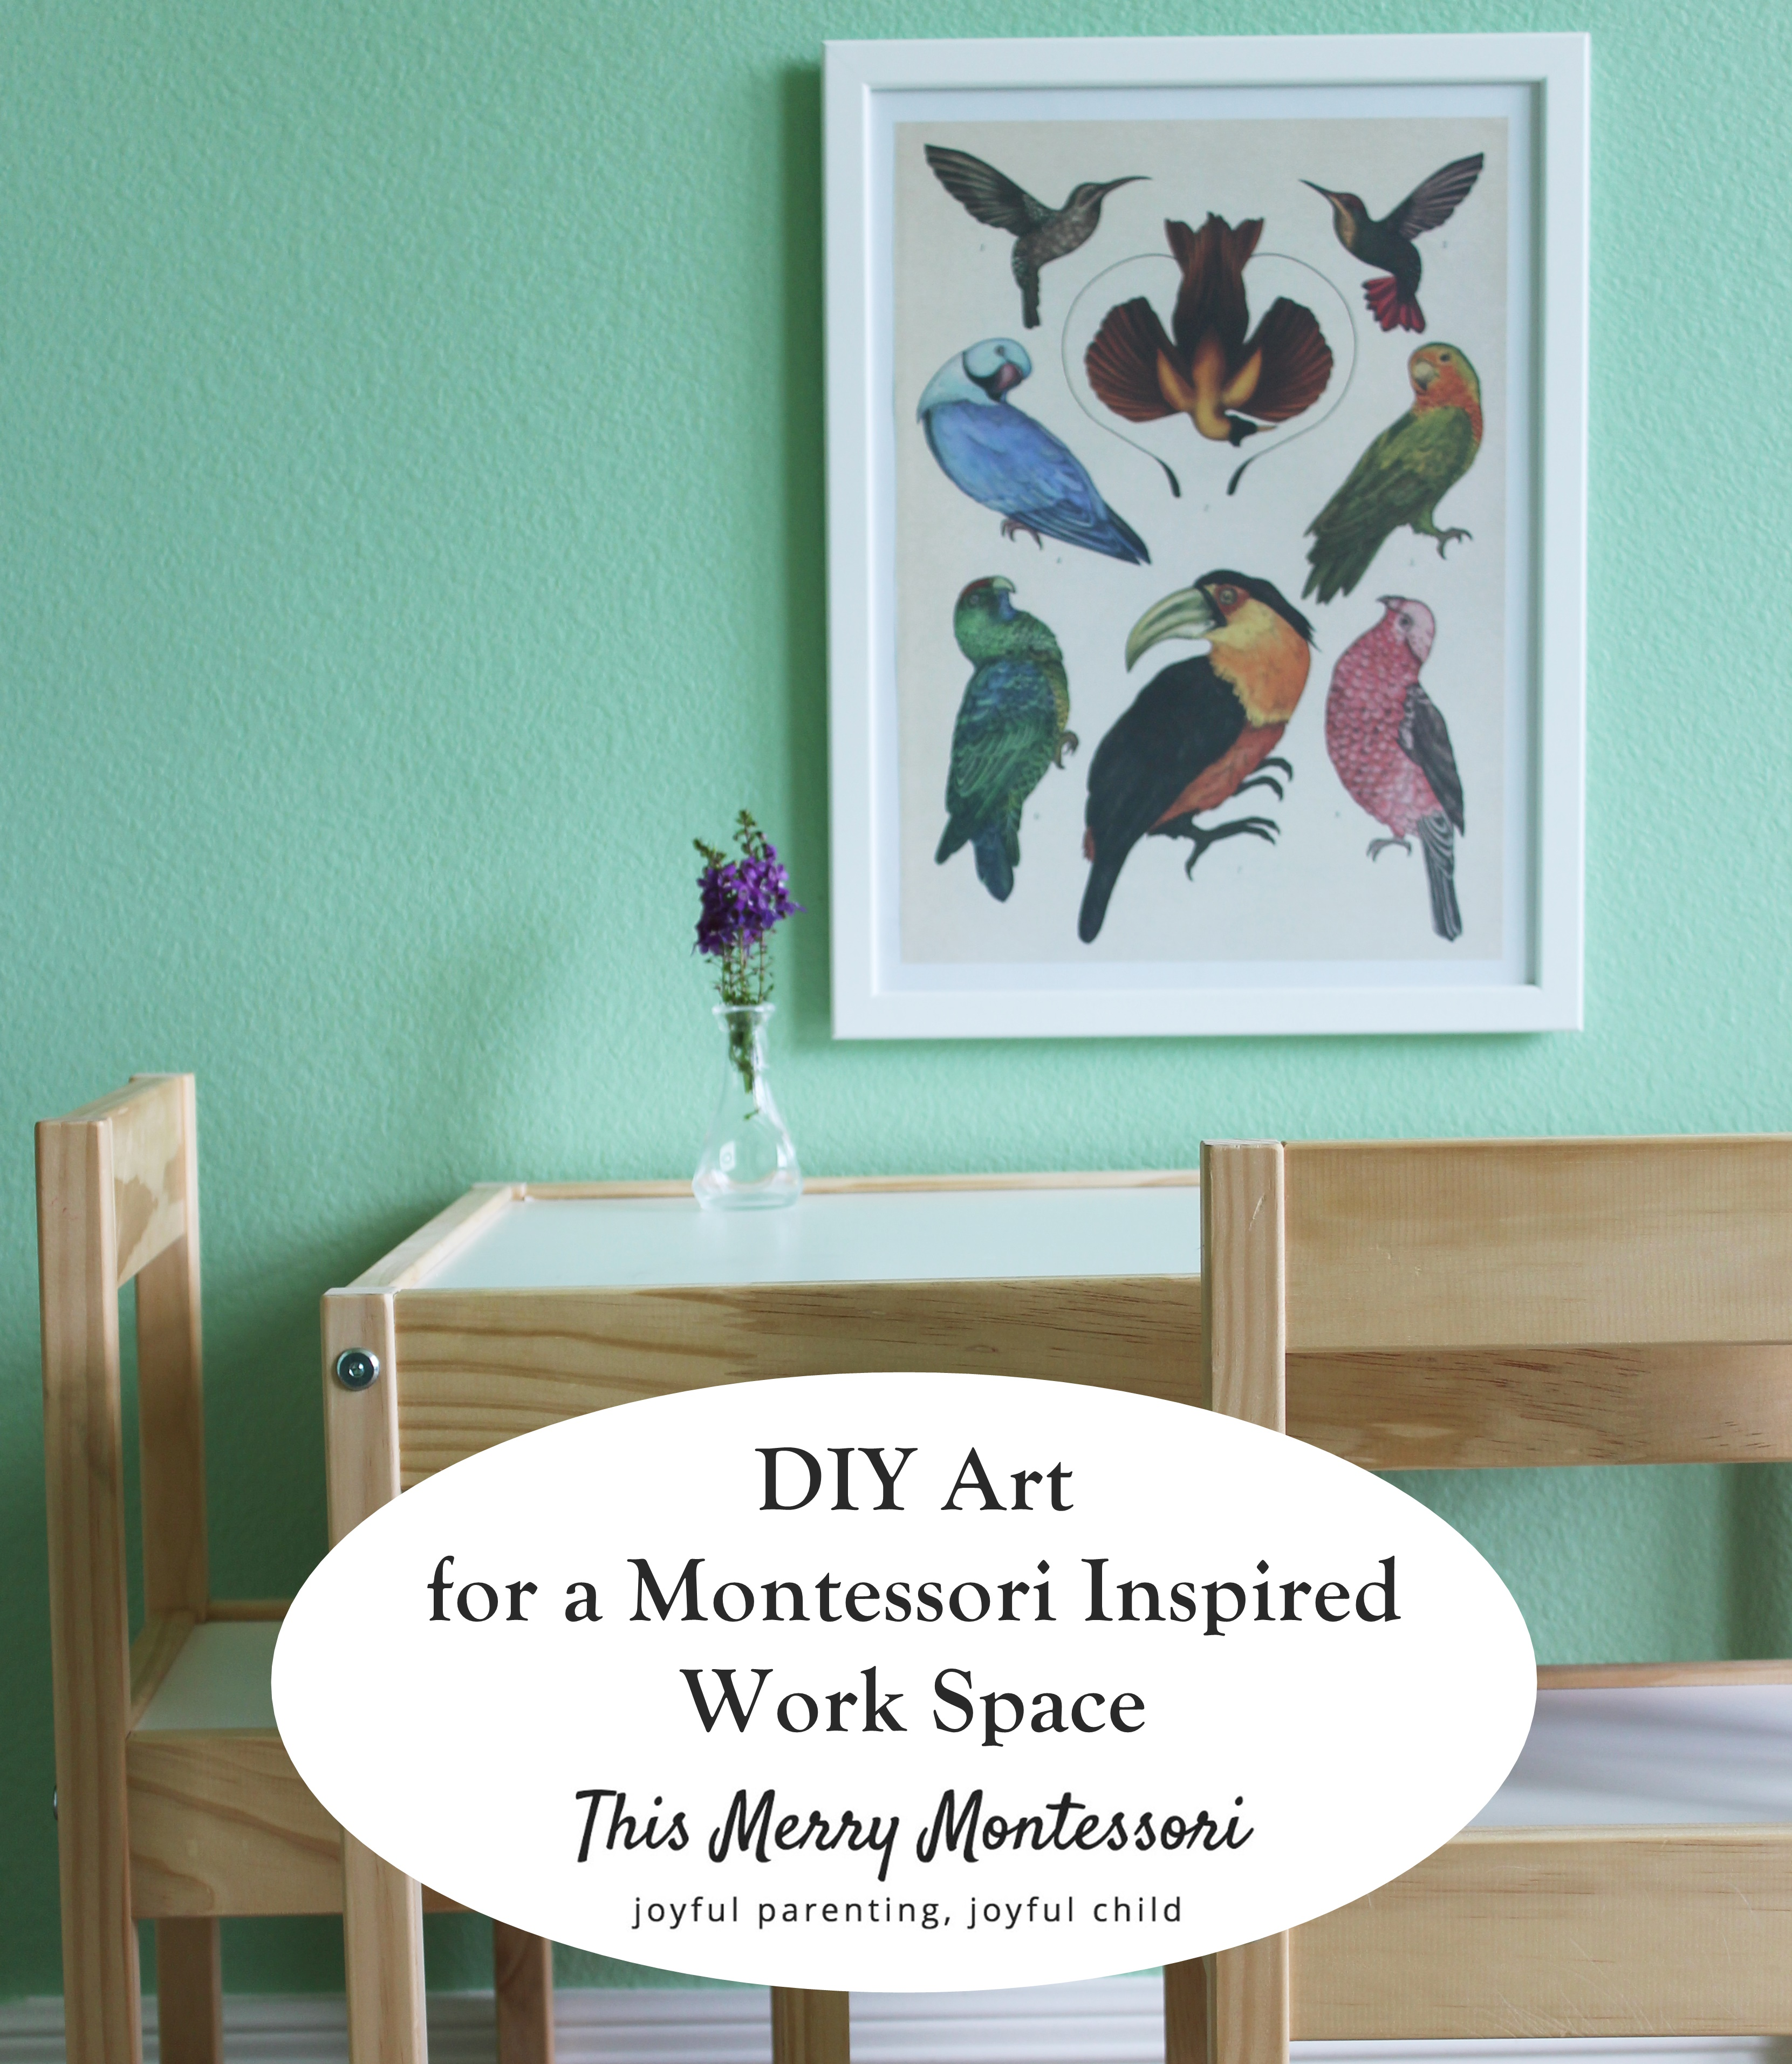 This Merry Montessori--DIY Art for a Montessori Inspired Work Space